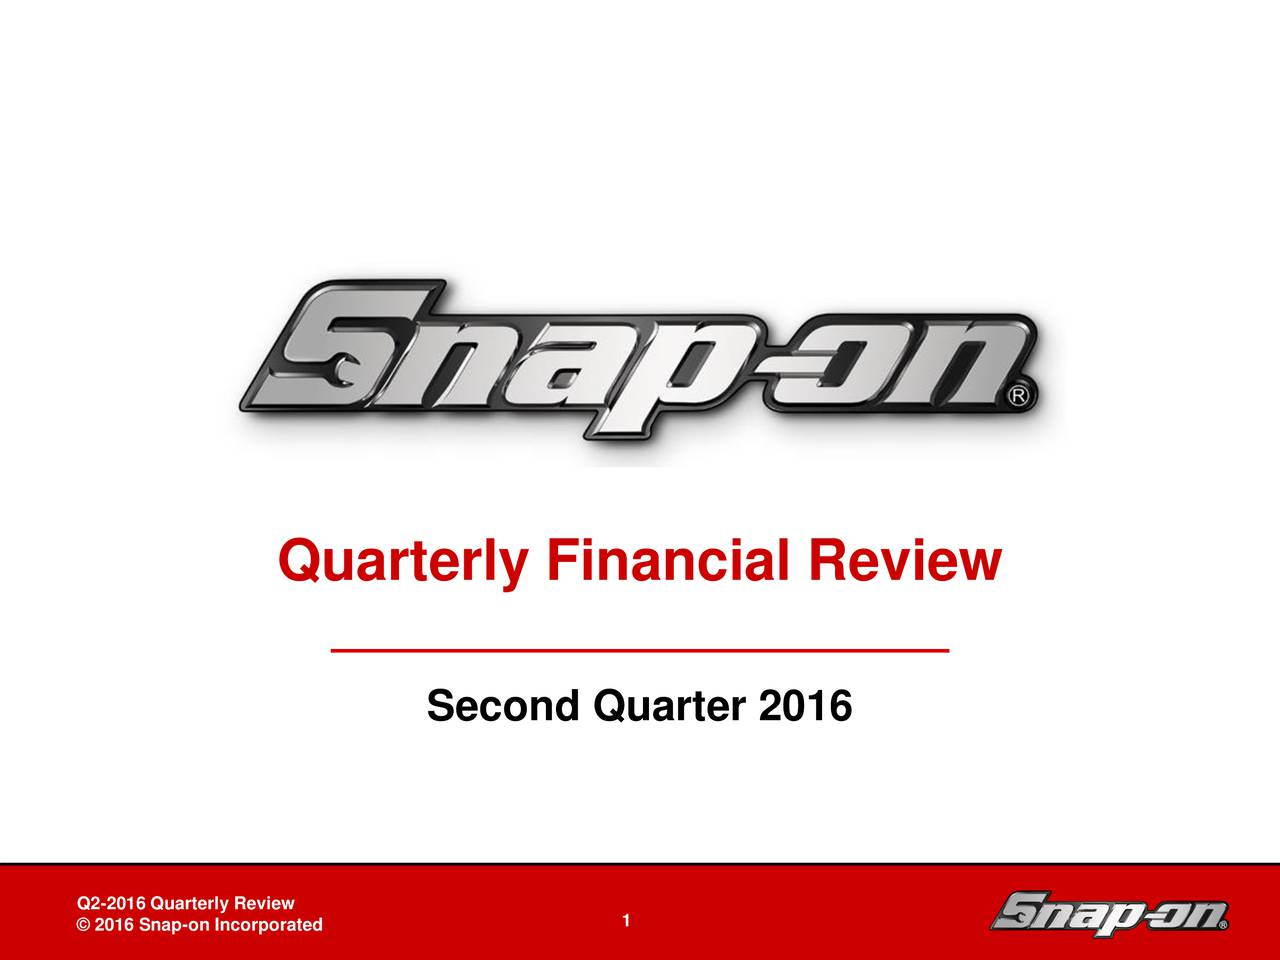 Second Quarter 2016 Snap-on Tools In-Depth Business Review Board of Directorsy Review DB-2 - 1 1April 27, 2011on Incorporated 1